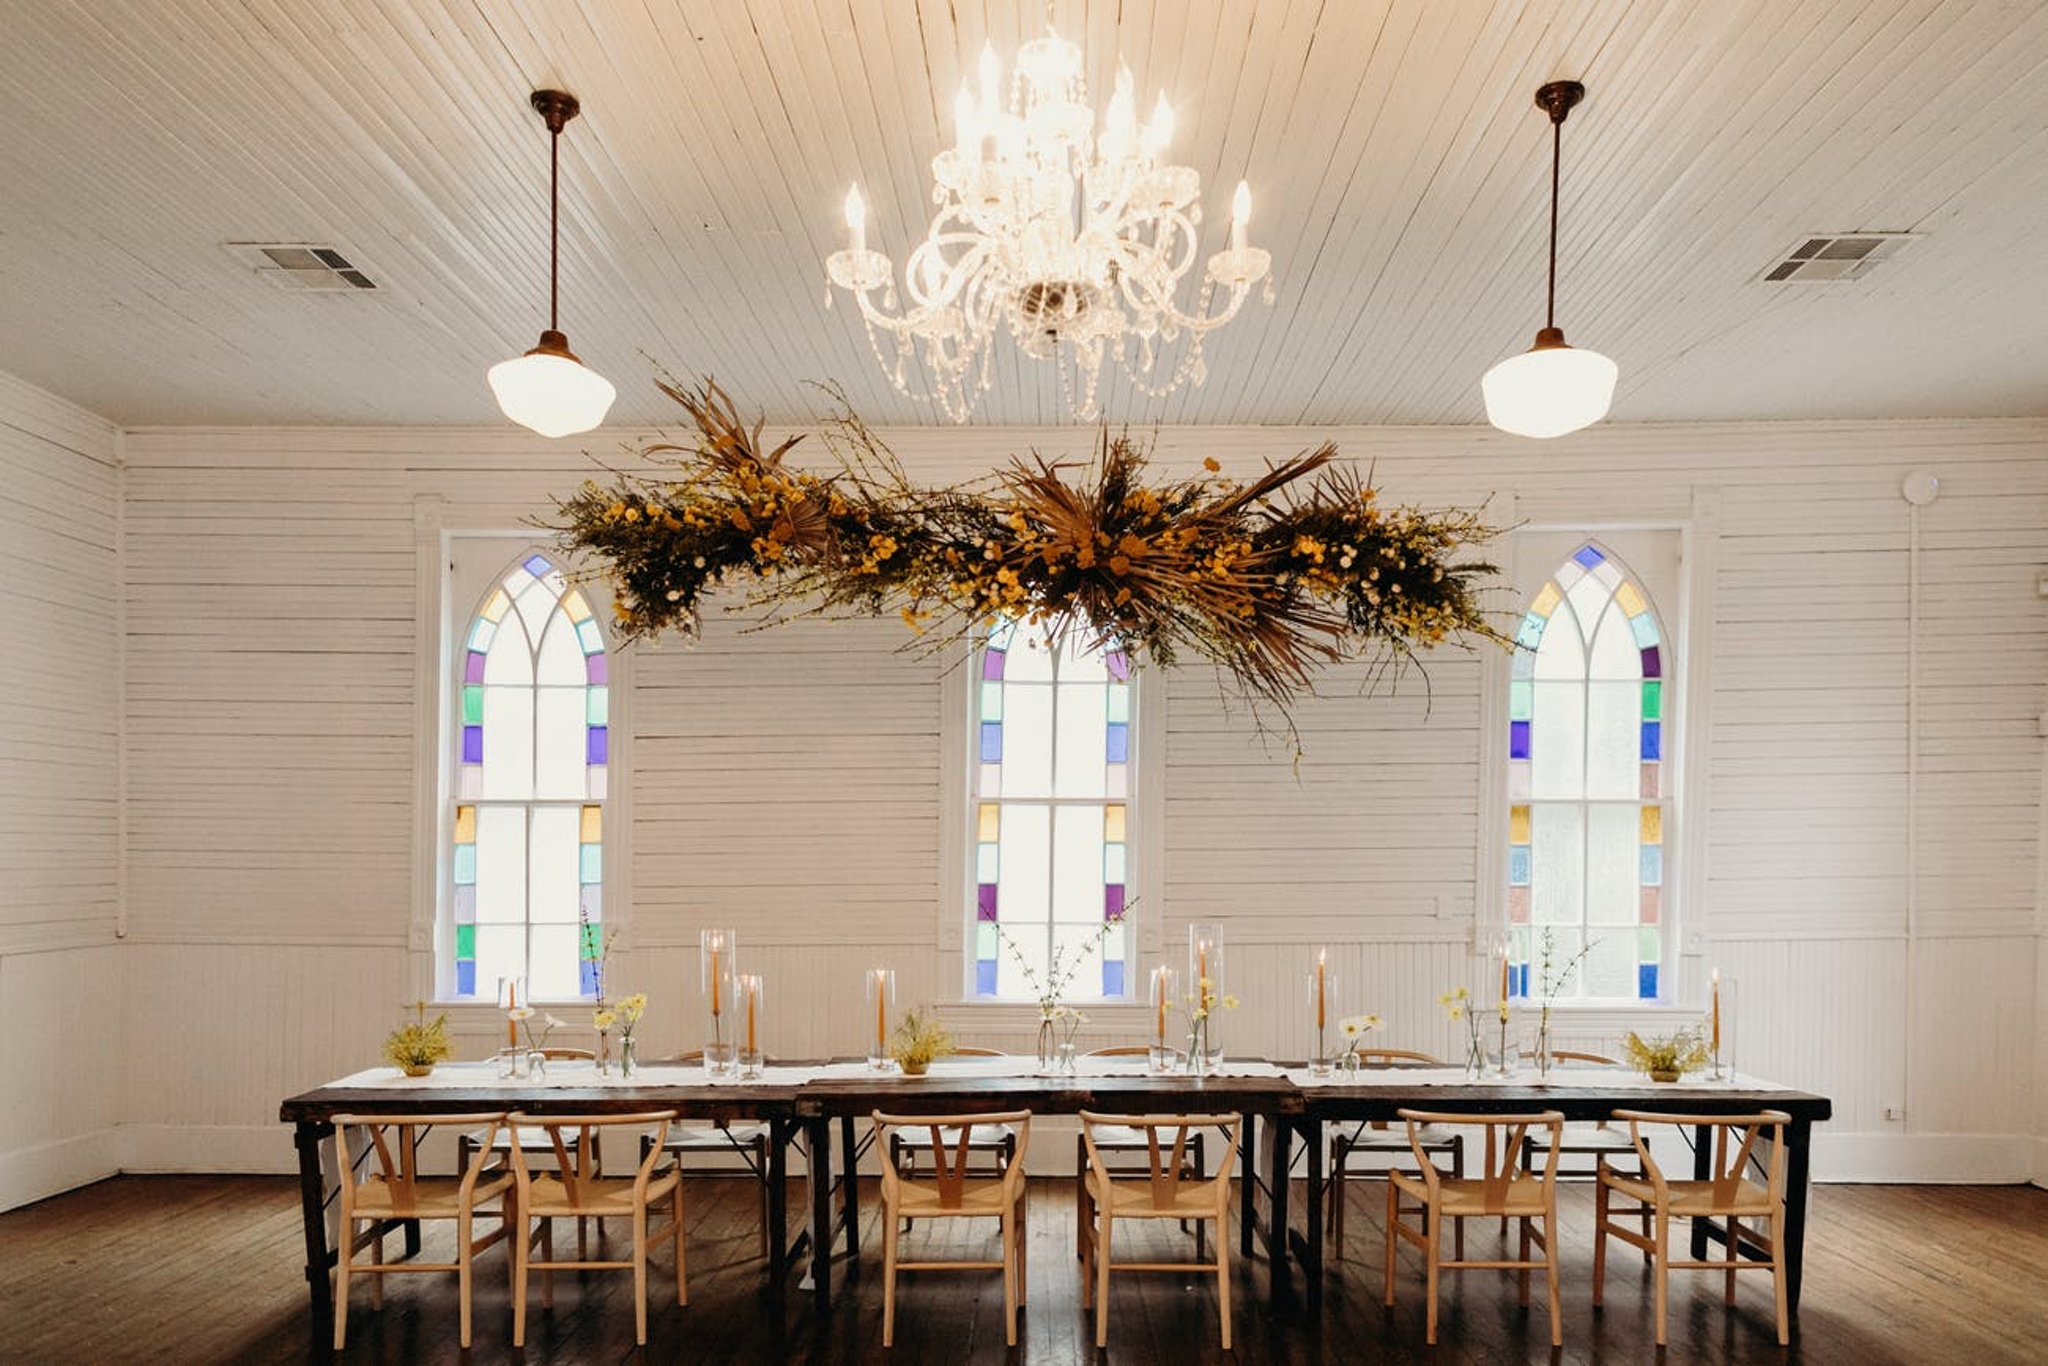 fall wedding reception table with suspended pampas grass centerpiece hovering over a rustic wood table